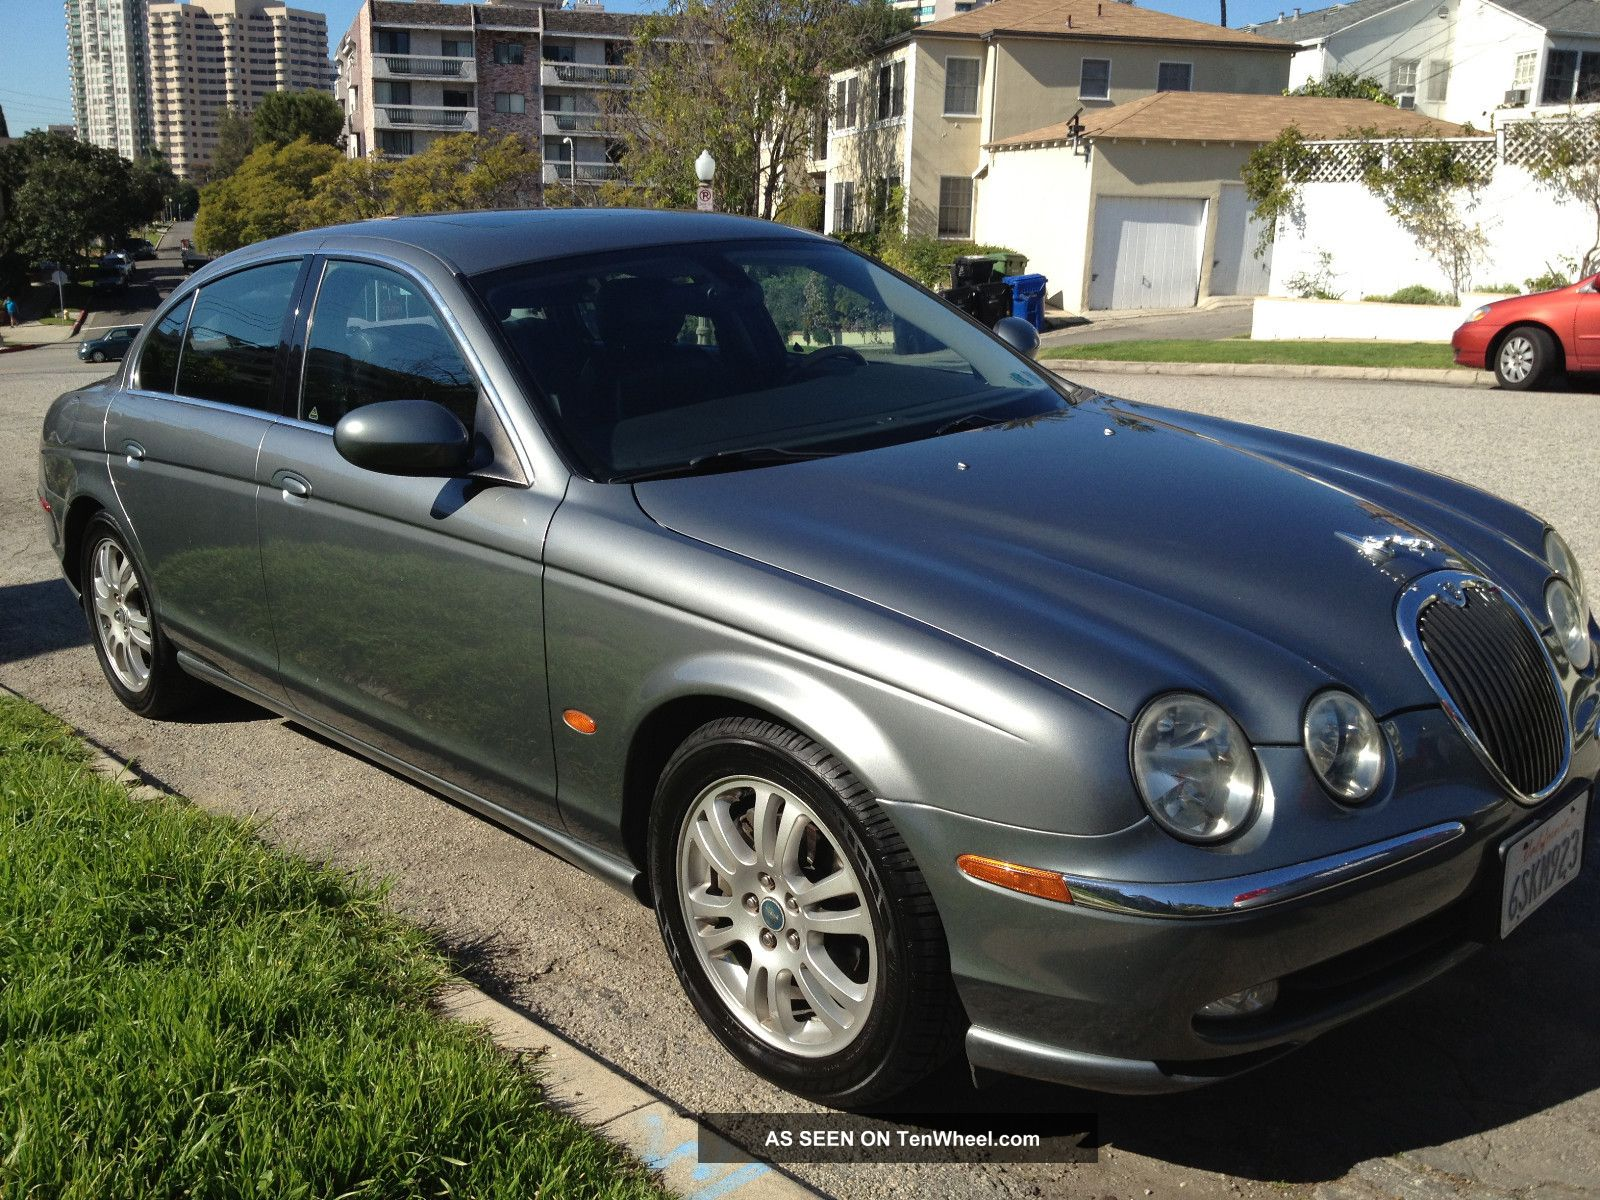 2003 jaguar s type v8 4 2l 4 door gray exterior. Black Bedroom Furniture Sets. Home Design Ideas